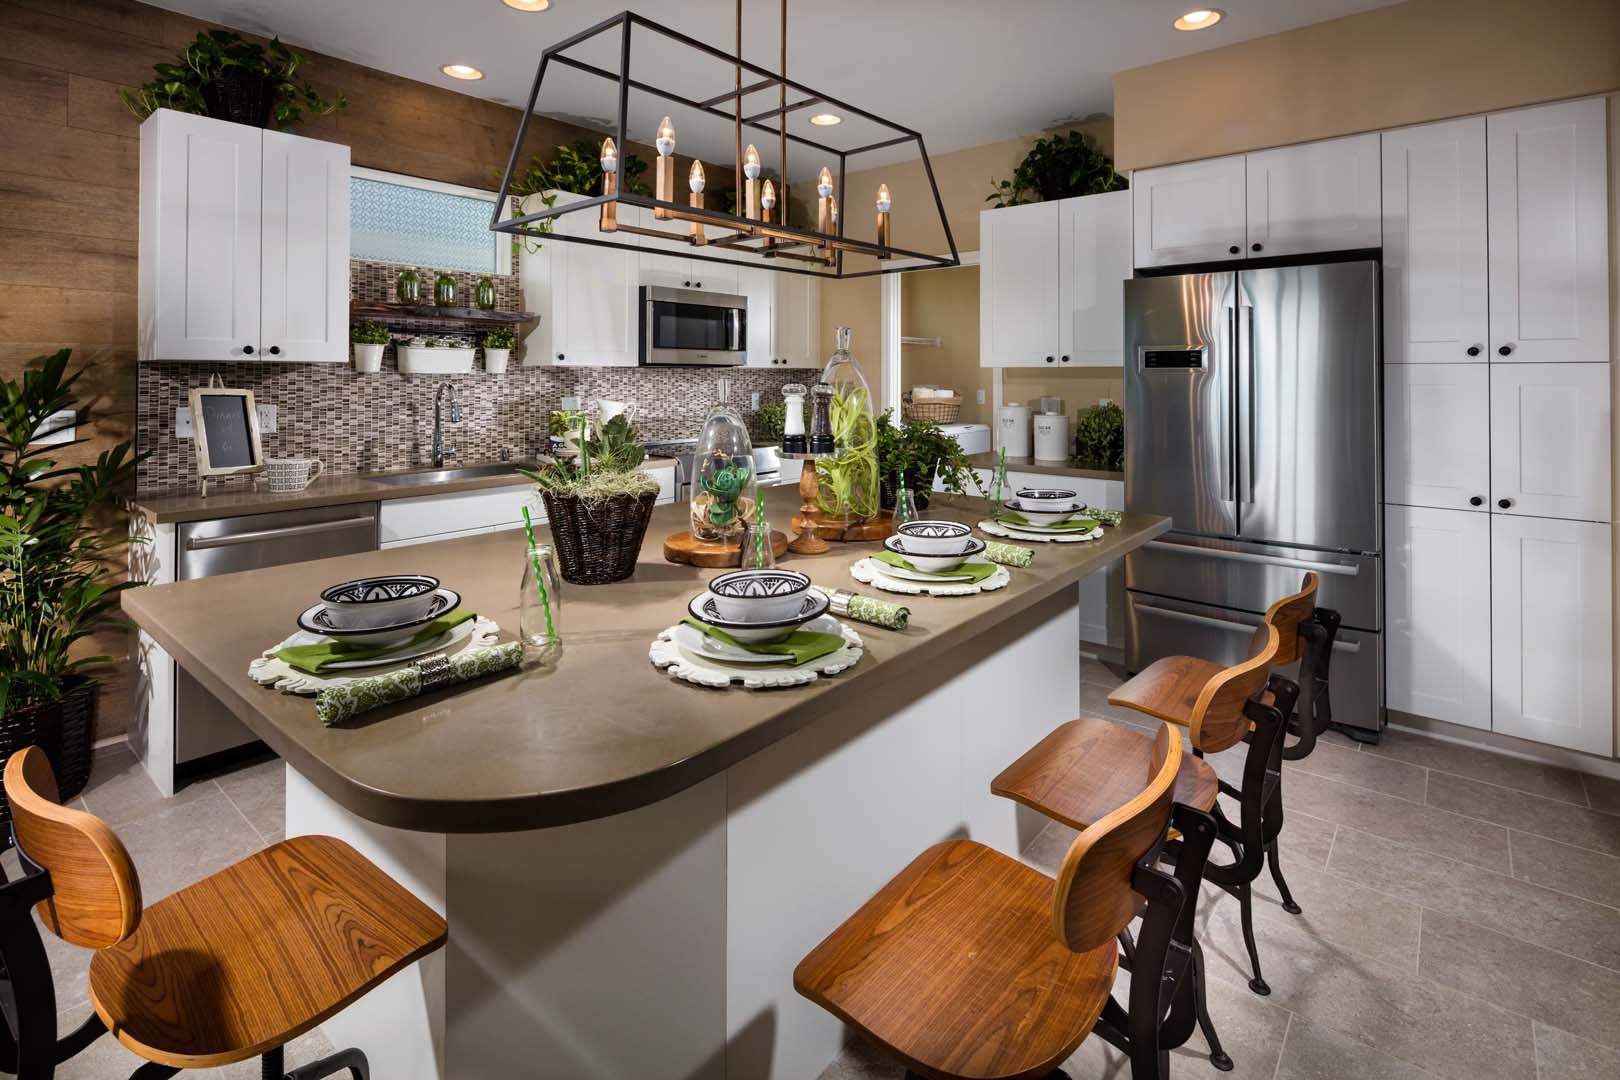 Coral Ridge Plan 2 - Kitchen